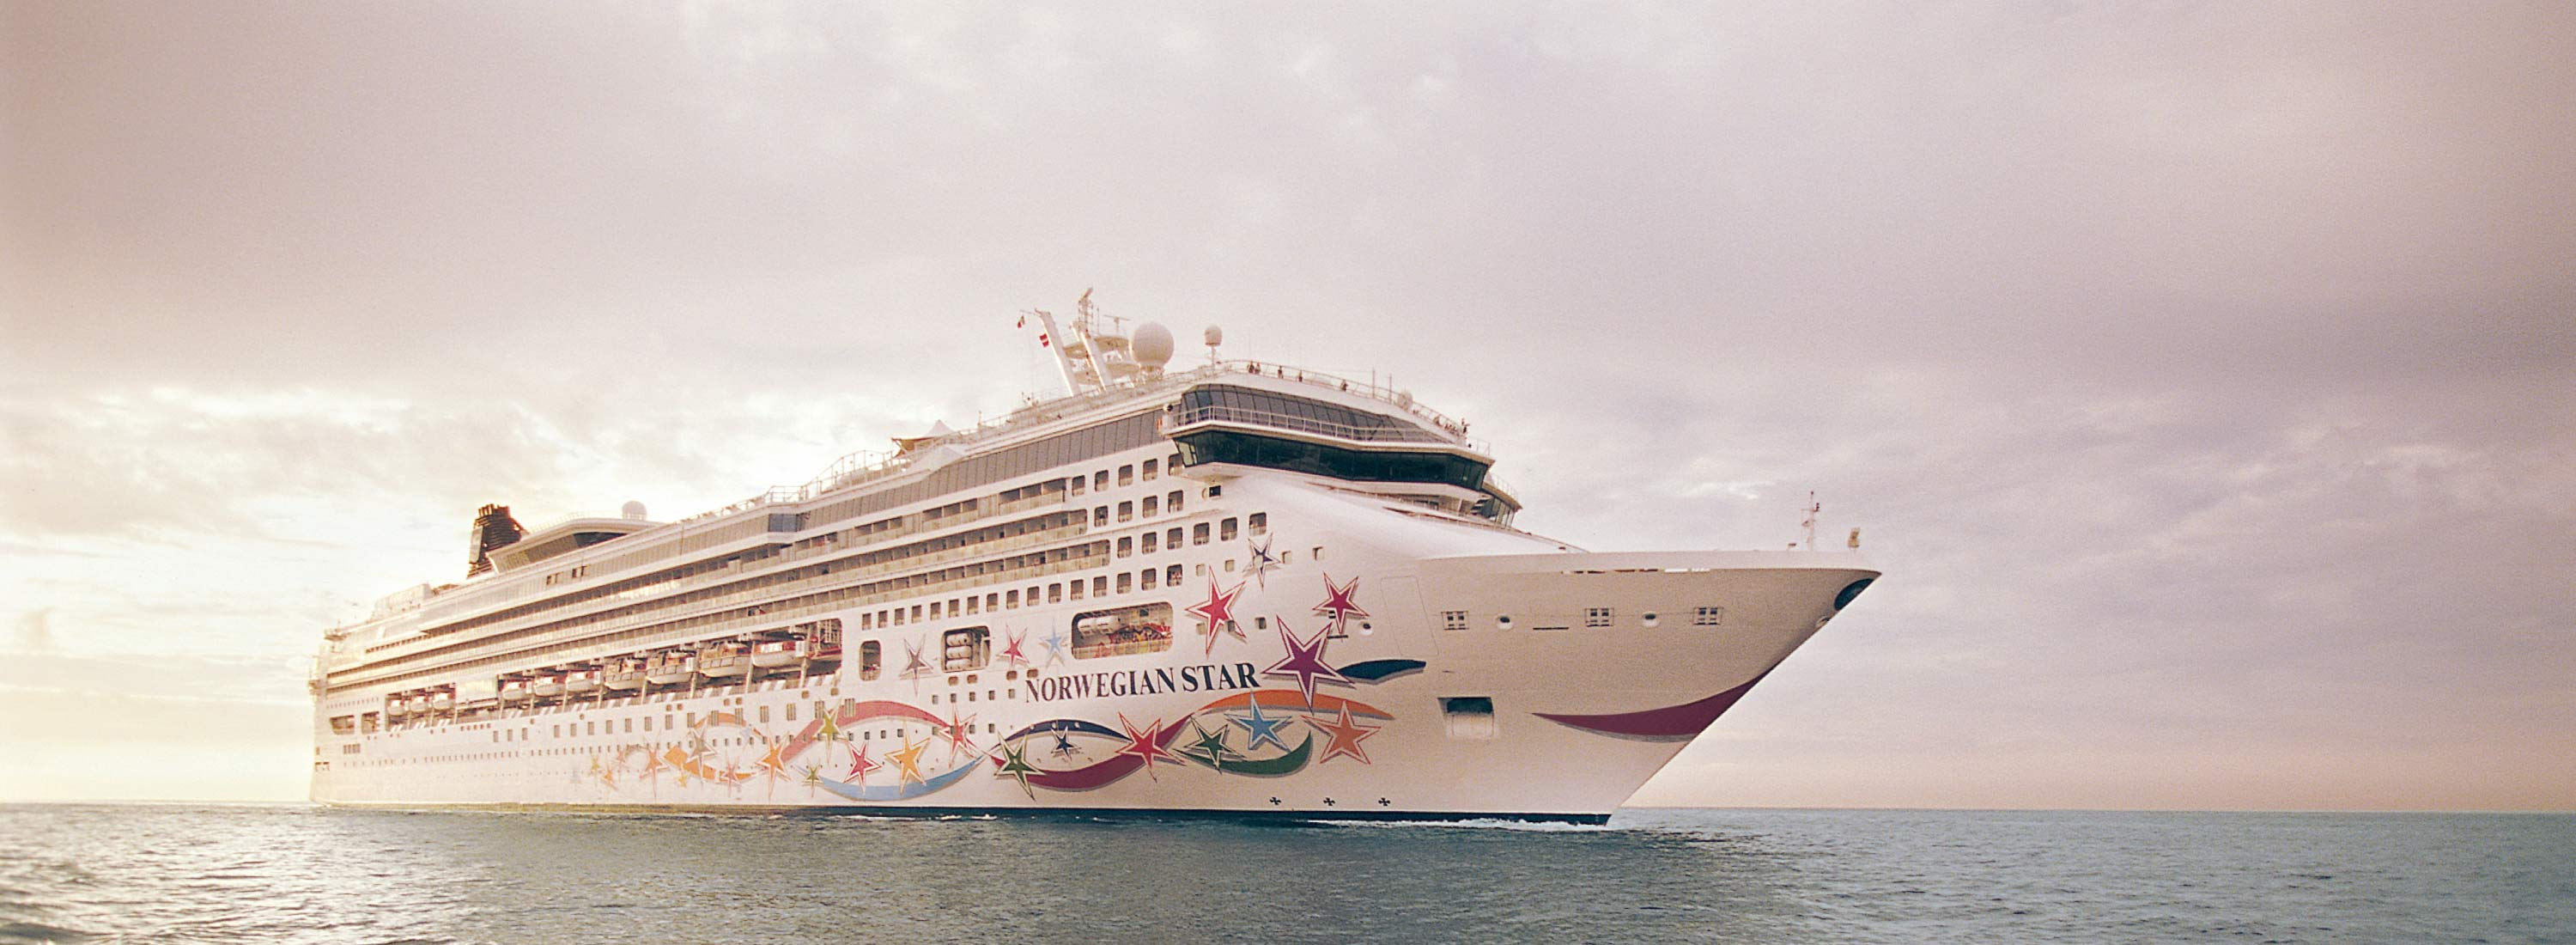 Norwegian Cruise Line - Free Drinks, WIfi, Specialty Dining, Shore Excursions and more